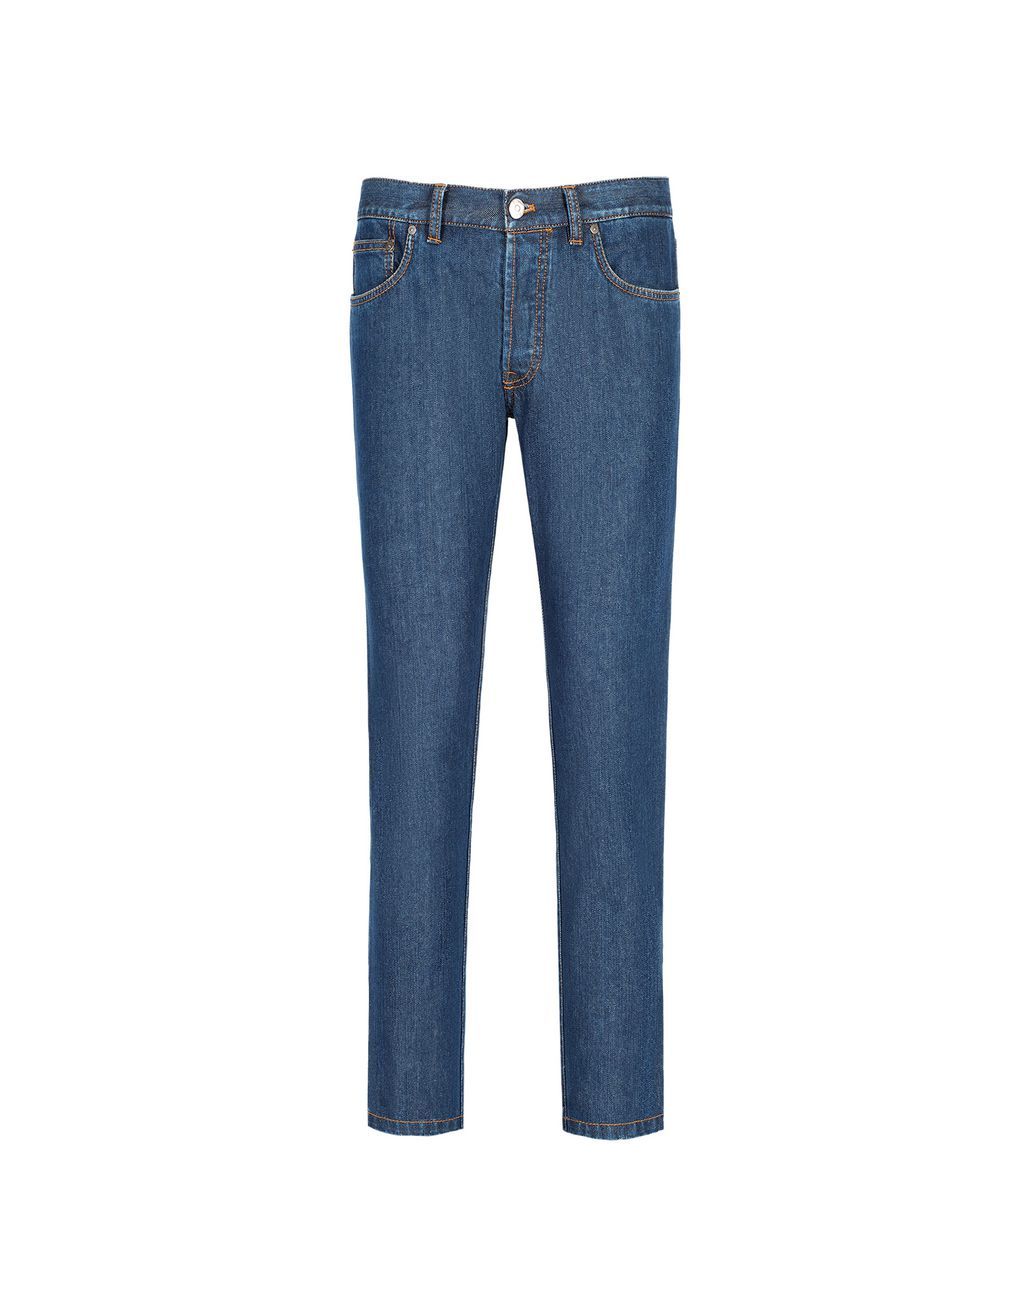 BRIONI Blue Slim Fit Aneto Jeans Denim Man f